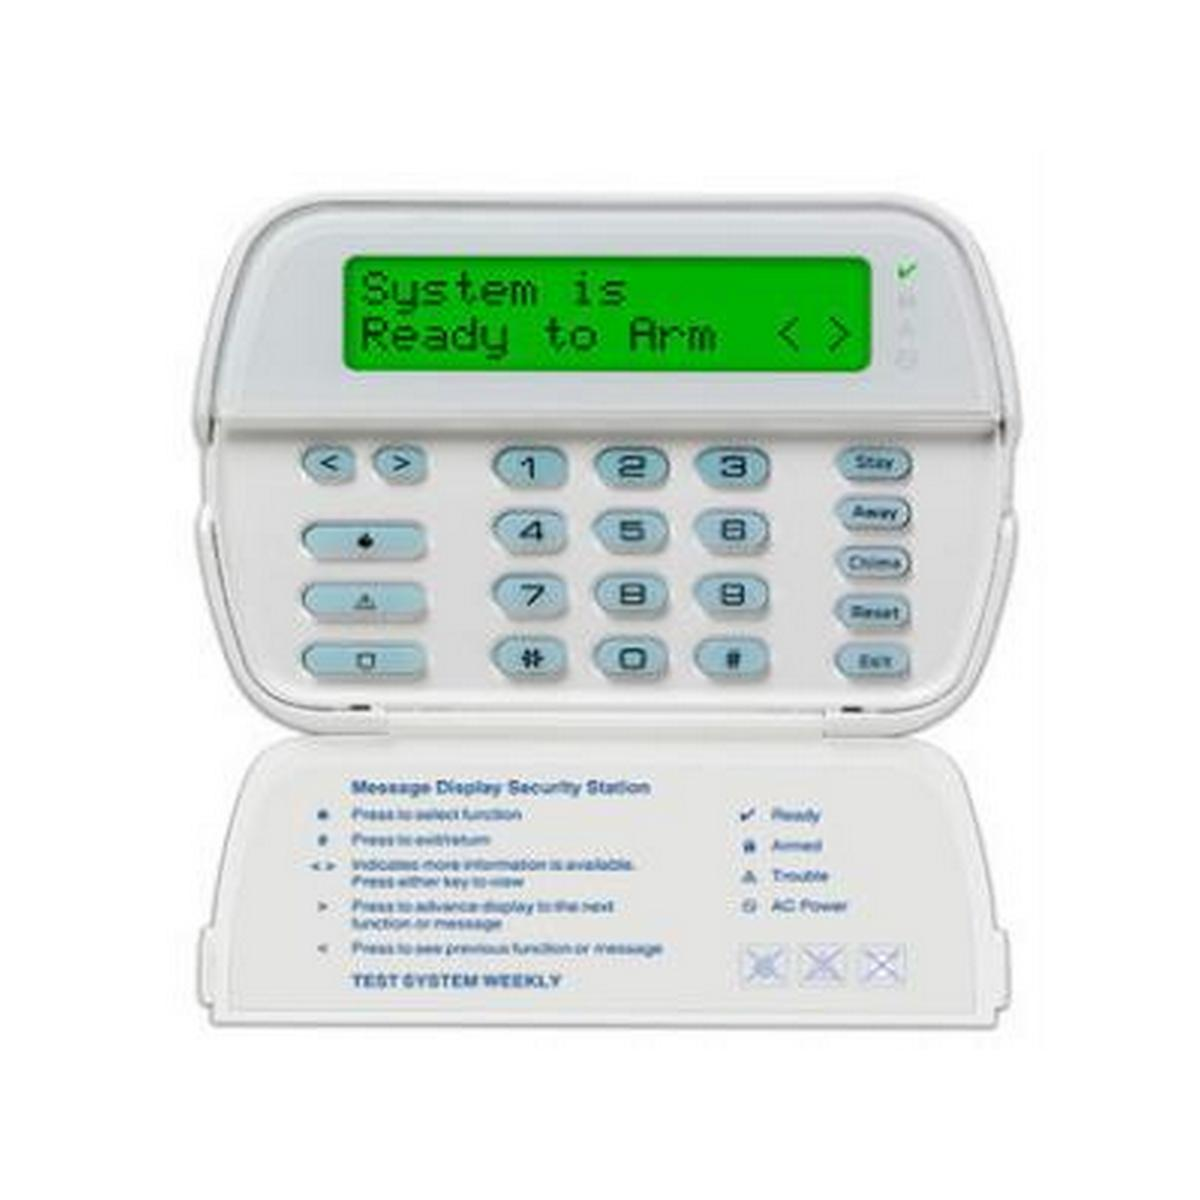 DSC RFK5501ENG  64 Zone picture icon LCD leypad w/ english function keys & built in receiver